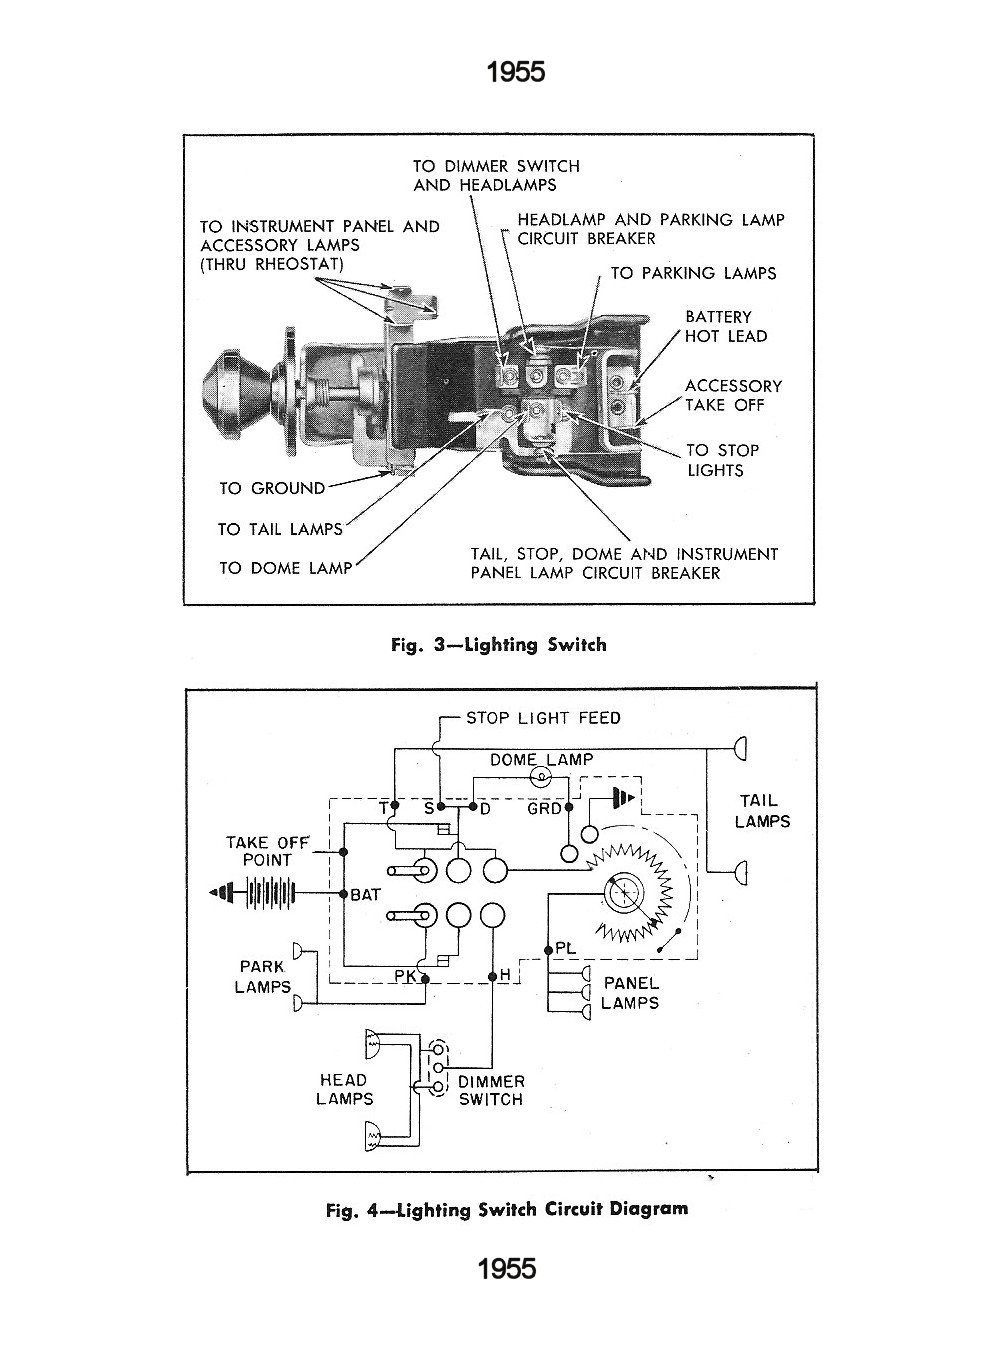 55csm1204a chevy wiring diagrams 1963 corvair wiring diagram at bakdesigns.co